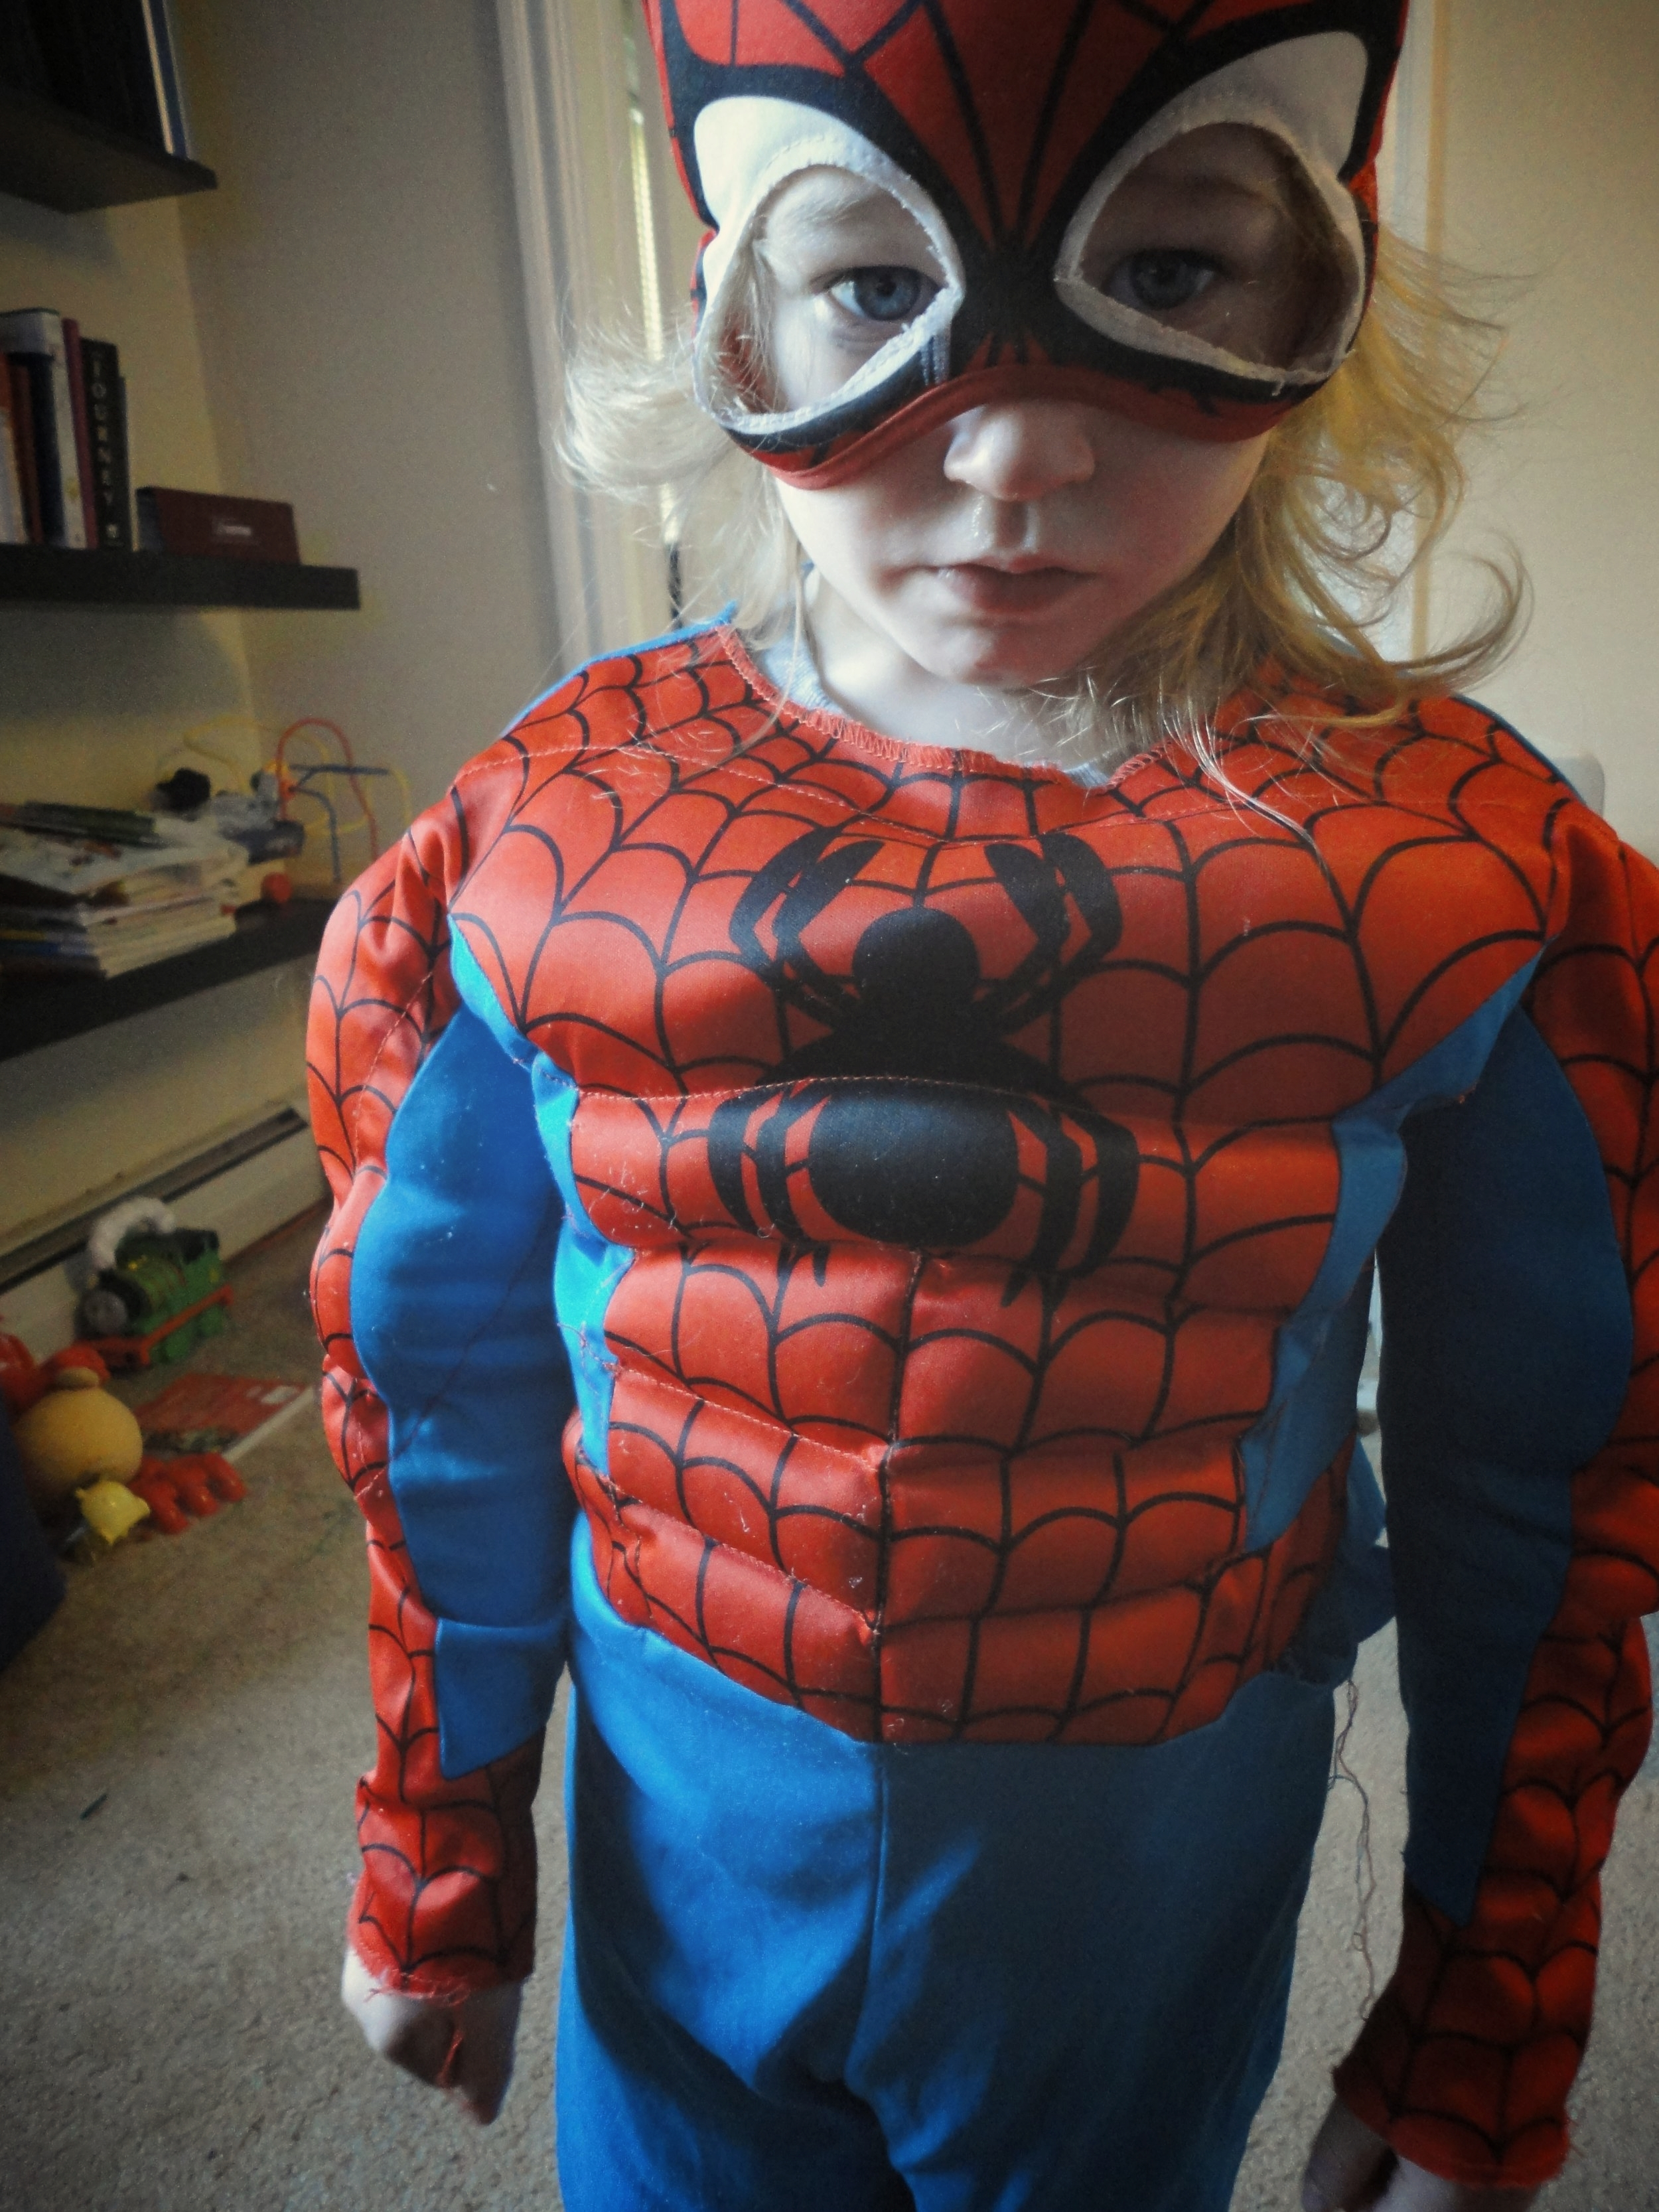 Monkey Boy in his first Spider-Man costume. He lived in that costume until it became to small and we lost the mask. He took a different mask to school. We've had three or four Spider-Man masks. We still have Captain America, Iron Man, two Power Ranger masks, Darth Vader, Kylo Ren, and Batman. Of course you need a Batman.